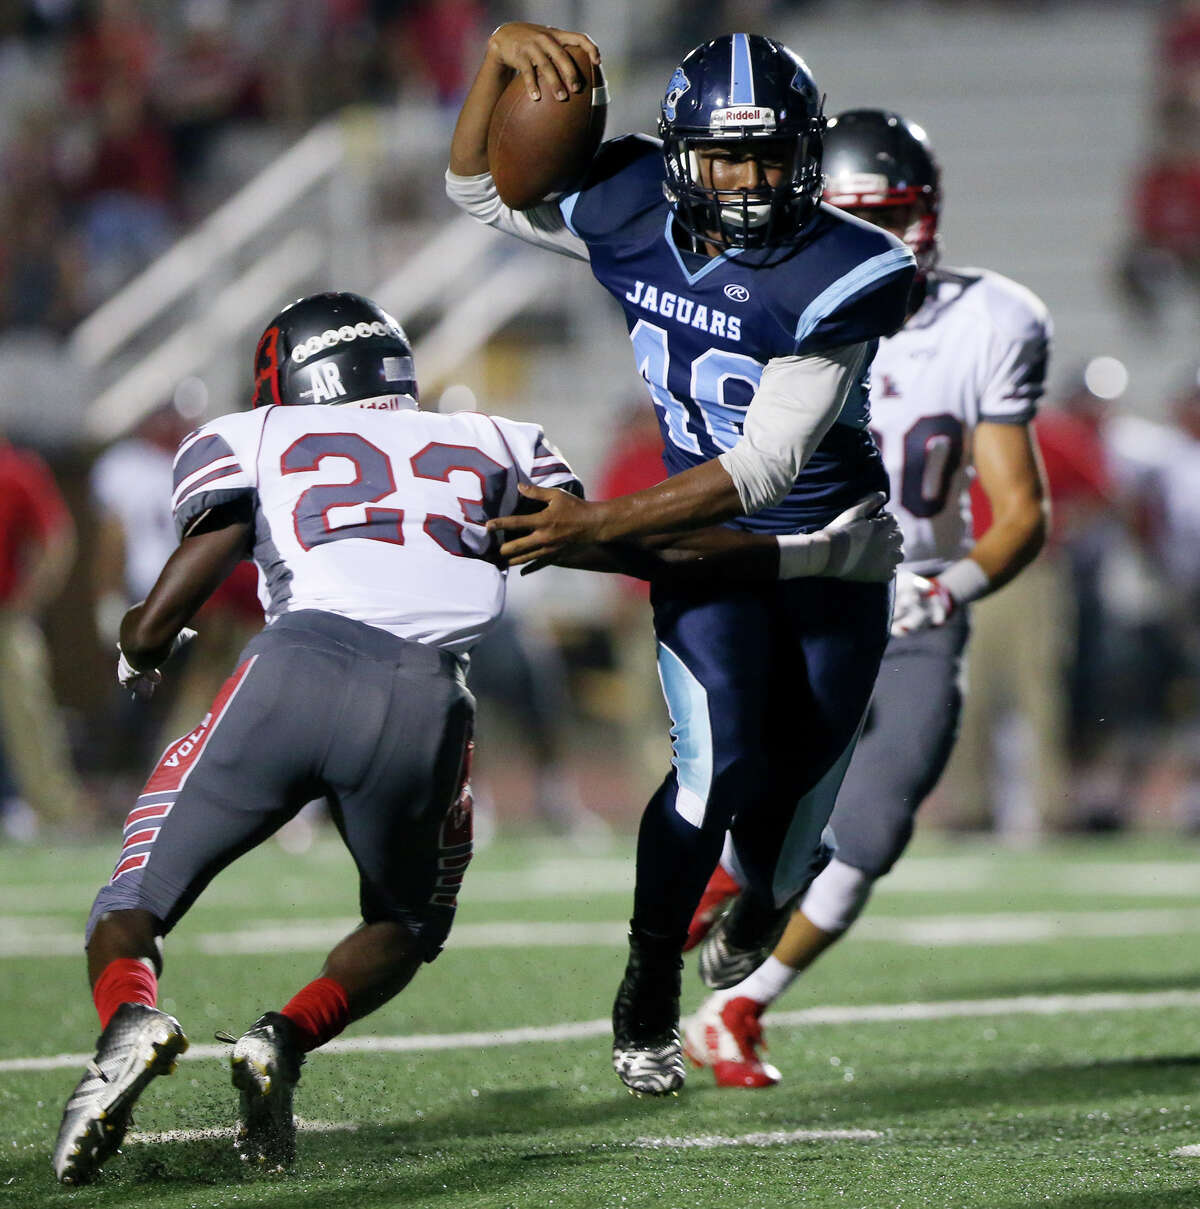 Johnson's Anthony Hendrix (center) slips between Lee's Mohamed Barow (left) and Jose Gonzalez during the first quarter of their District 26-6A game at Comalander Stadium on Friday, Sept. 25, 2015. MARVIN PFEIFFER/ mpfeiffer@express-news.net